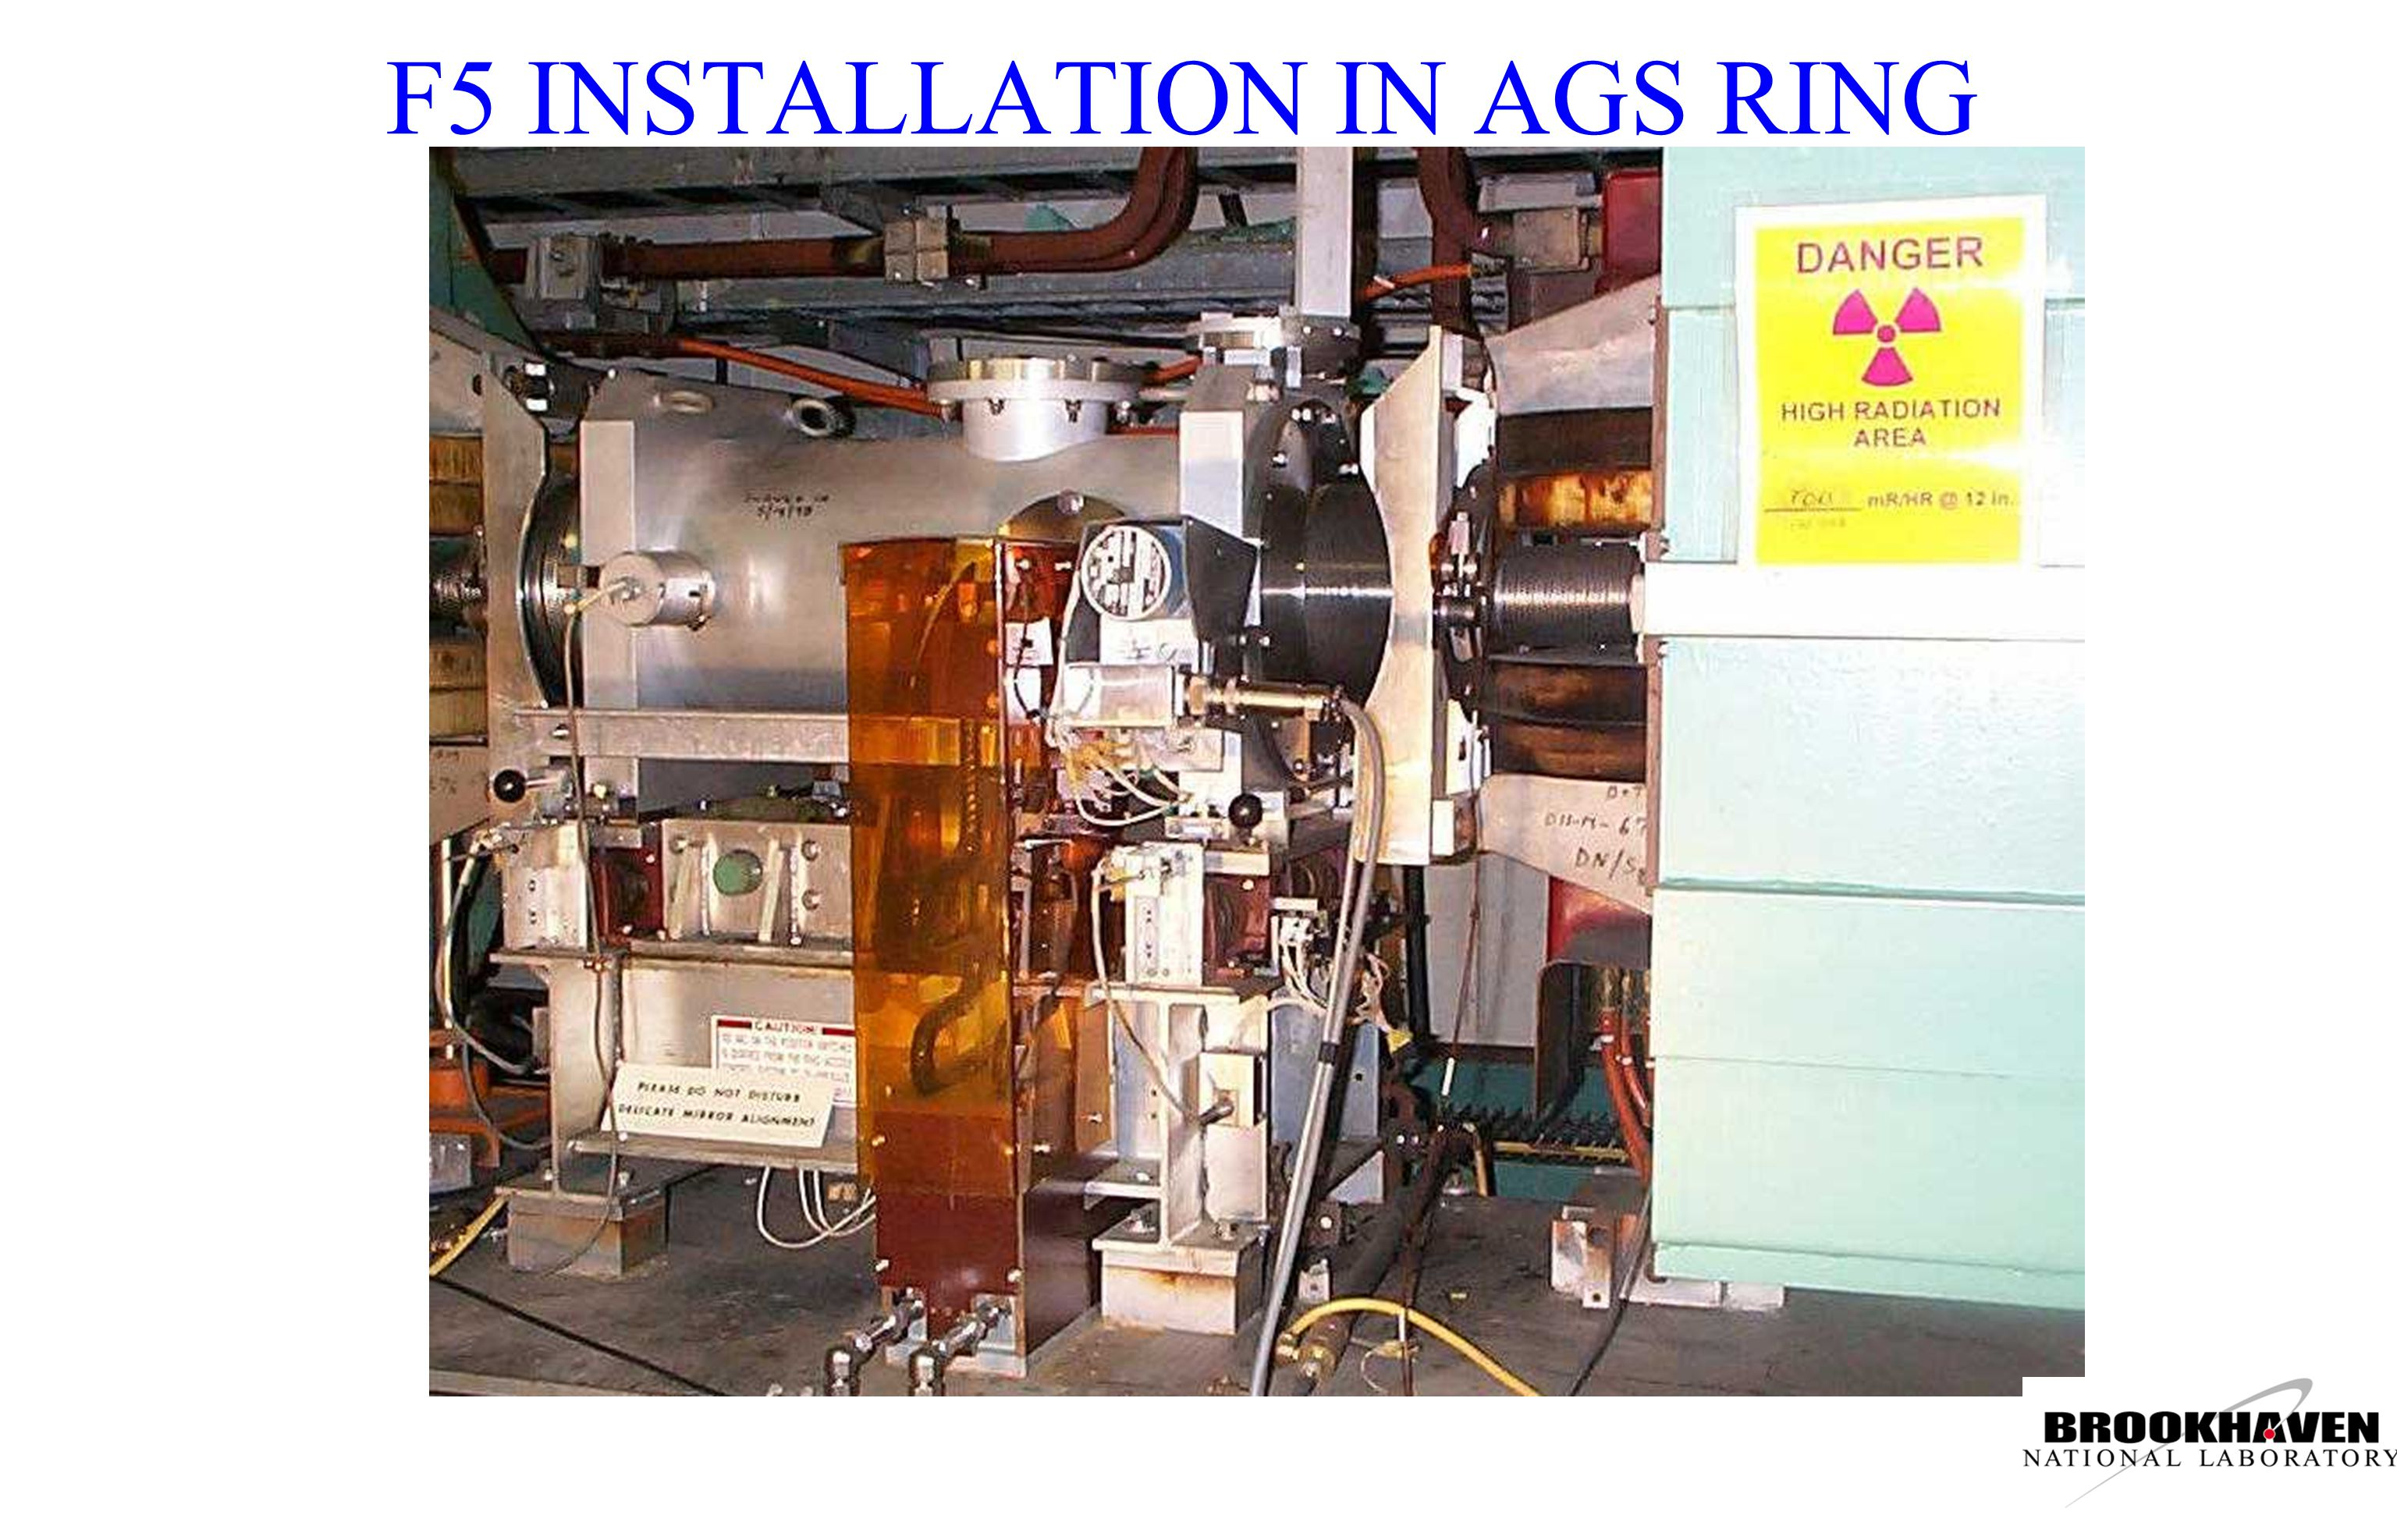 F5 INSTALLATION IN AGS RING